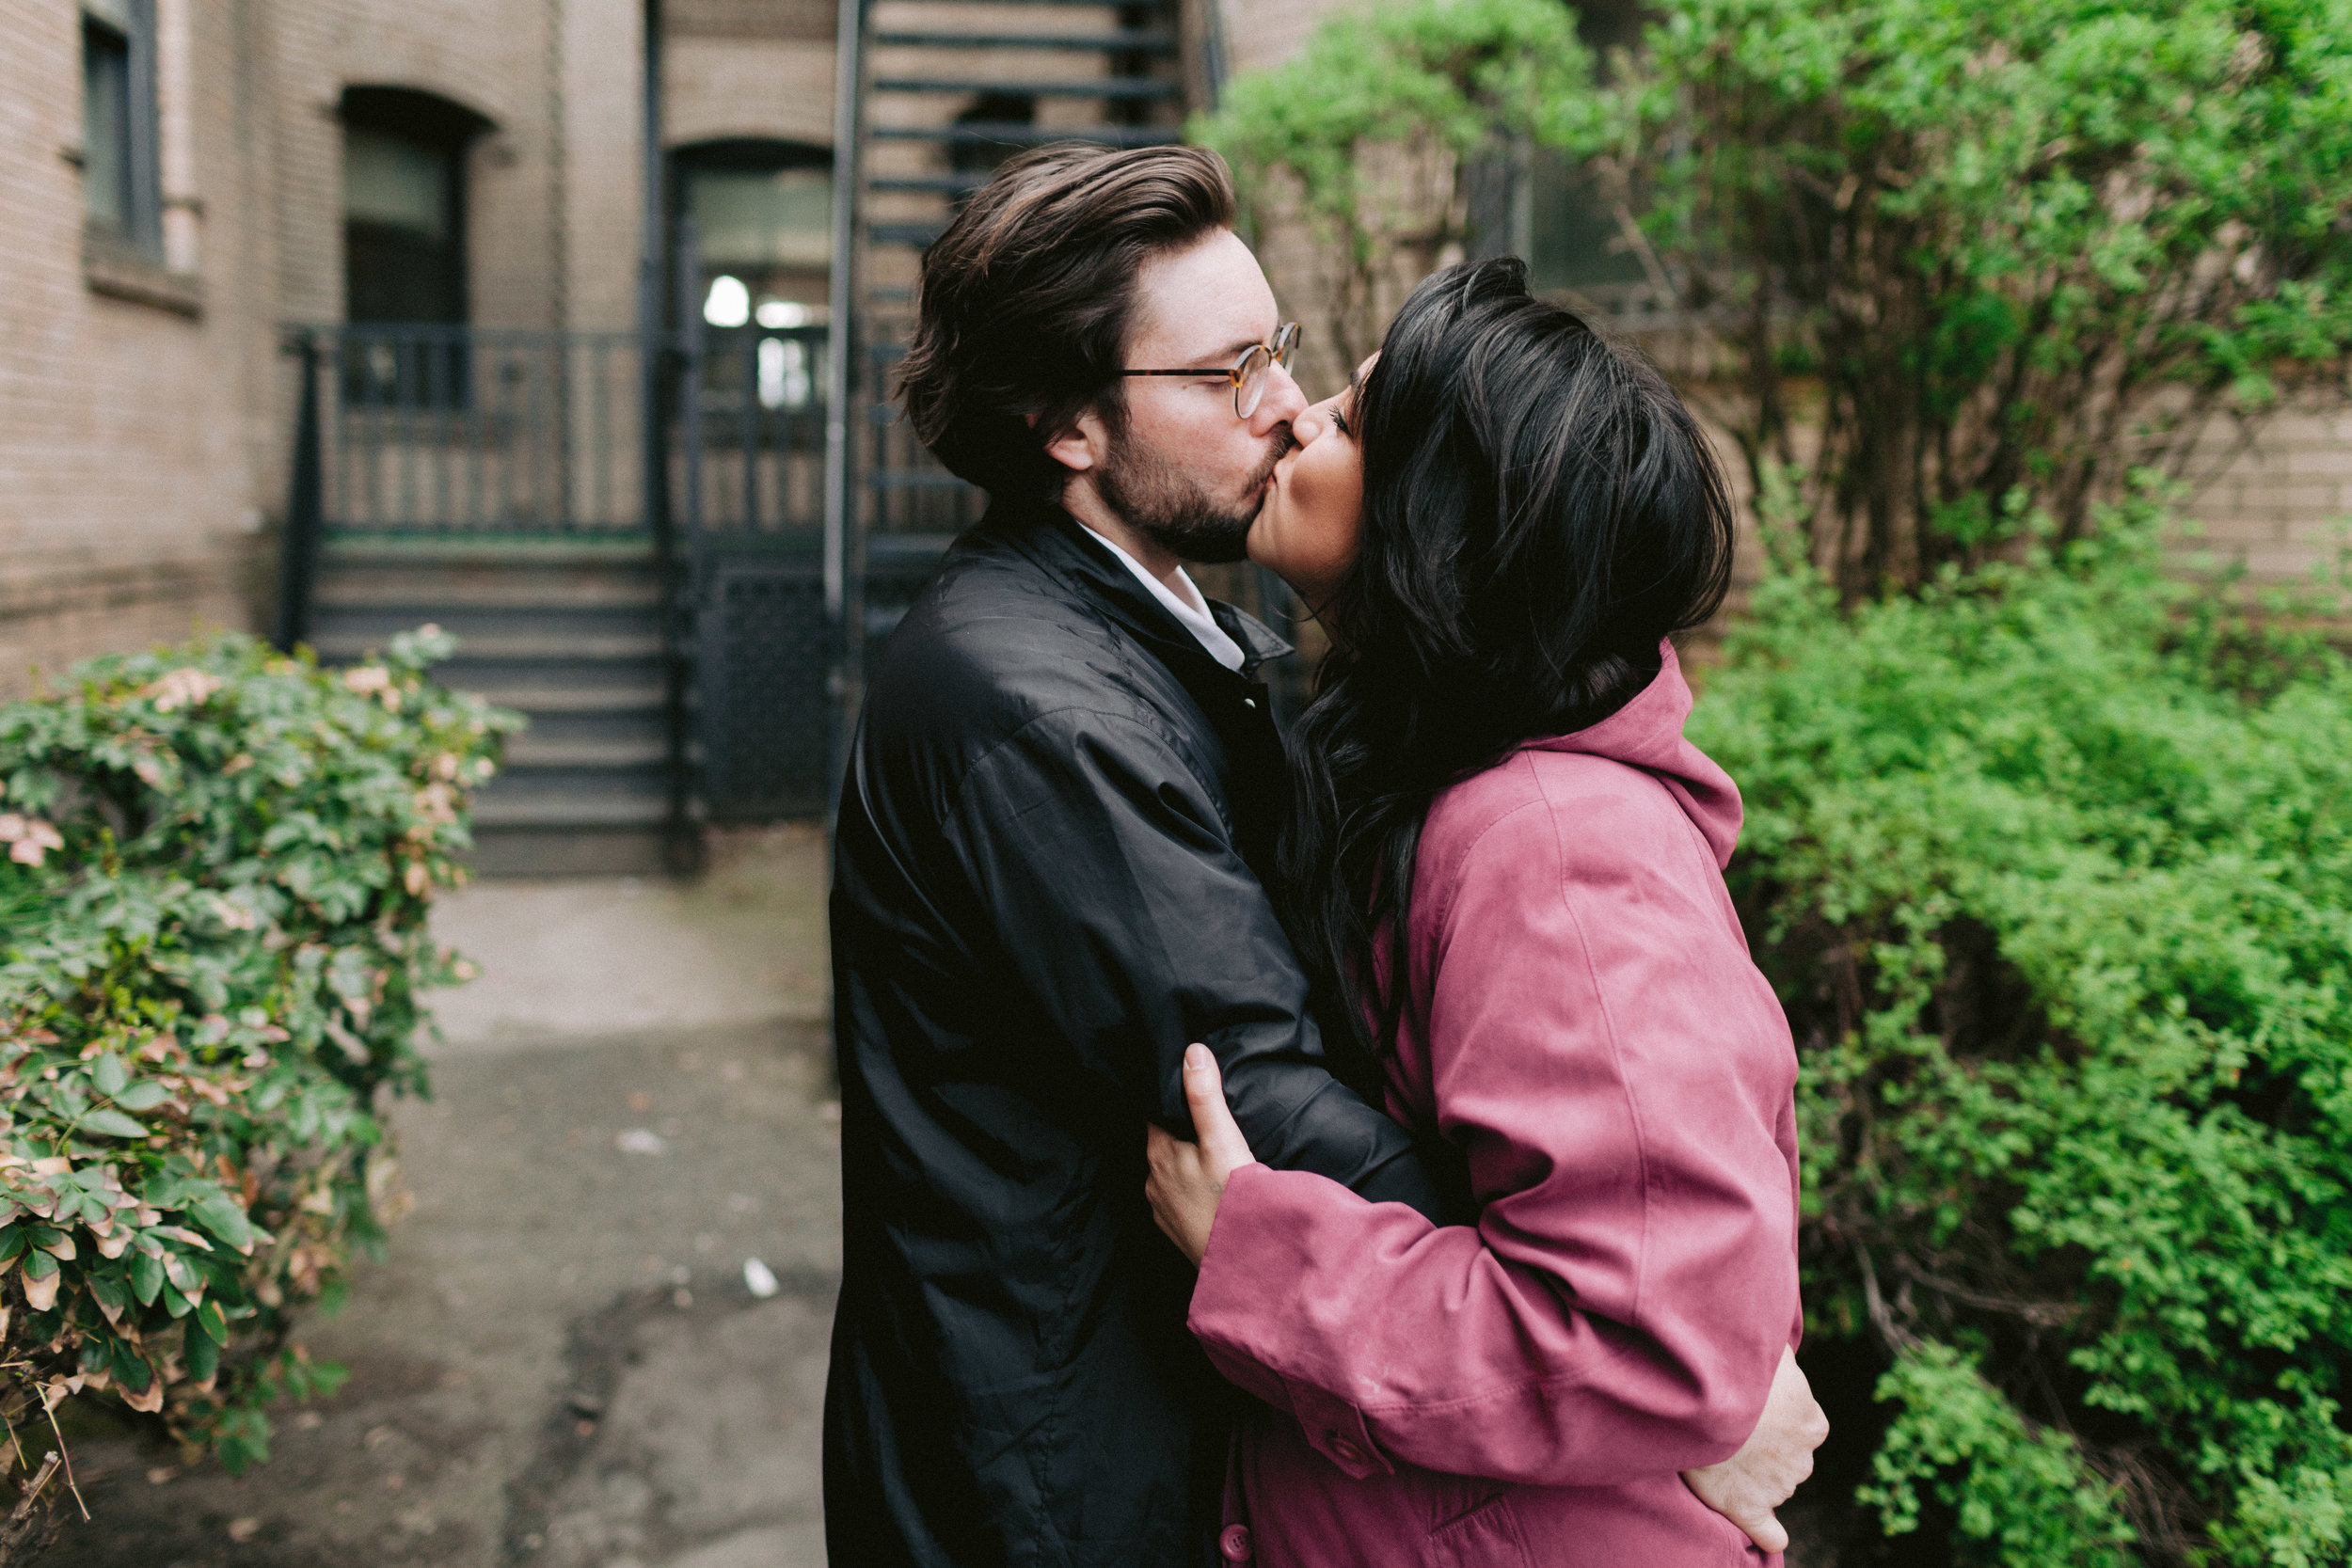 Kate-Brandon-Engagement-2019-04-27-Alycia-Lovell-Photography-86.JPG